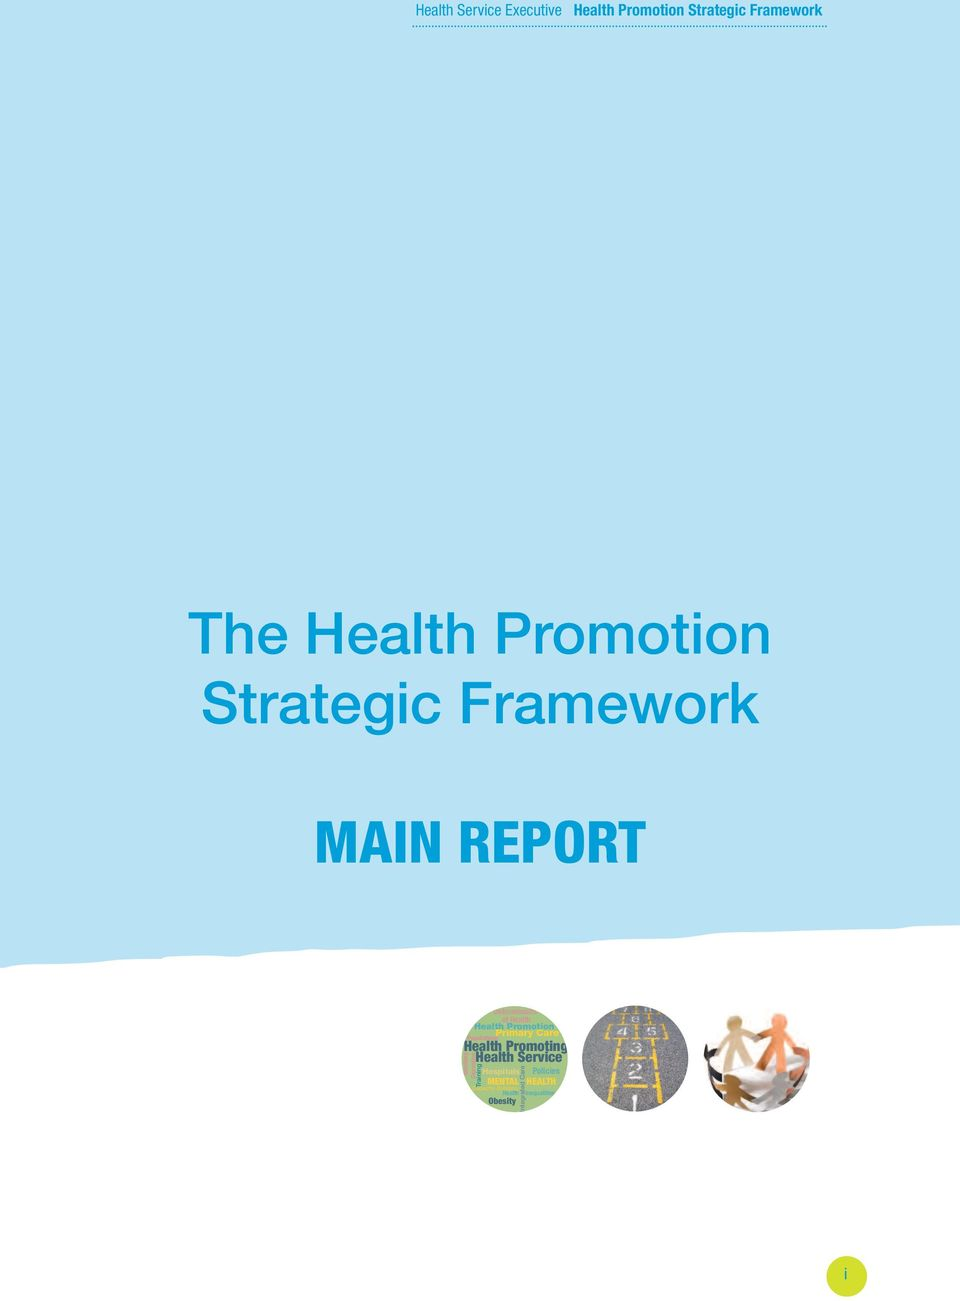 Primary Care Populations Health Promoting Health Service Smoking Cessation